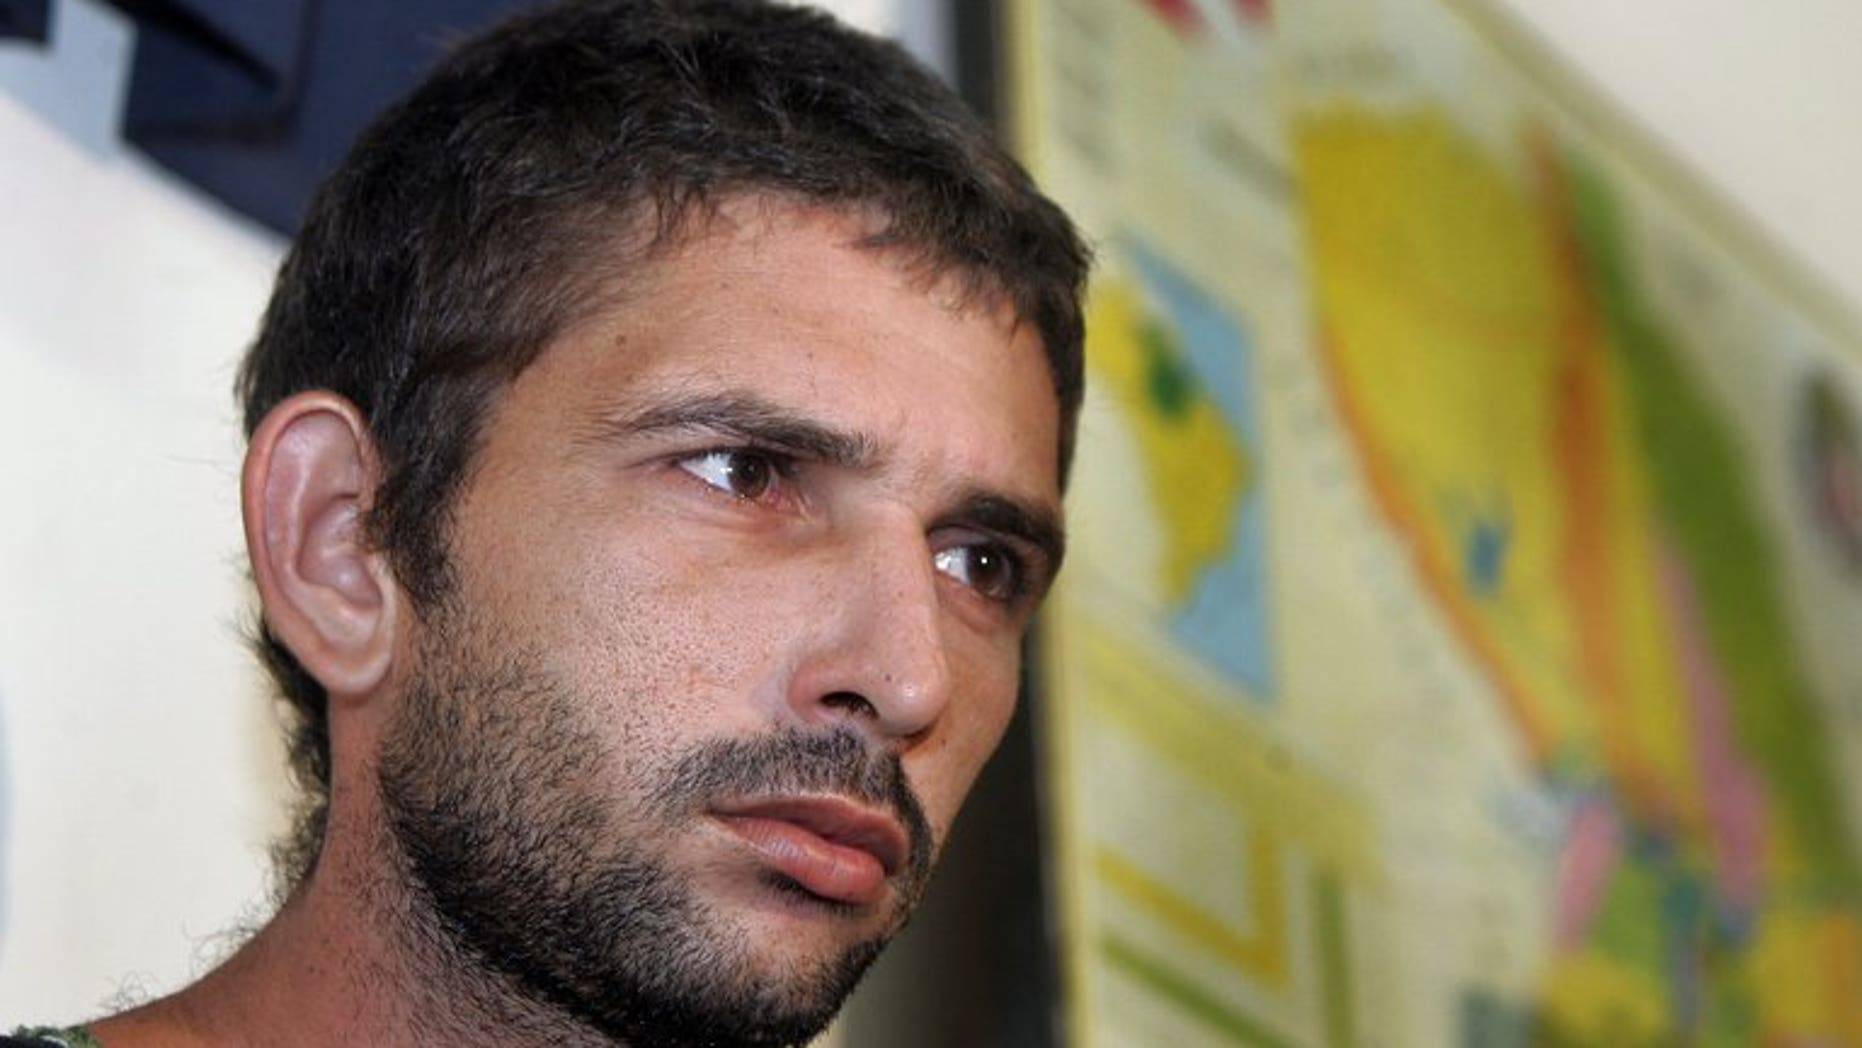 Rayfran das Neves Sales, pictured February 21, 2005, has been placed under house arrest in Brazil after serving only eight years for the murder of US-born missionary nun Dorothy Stang.